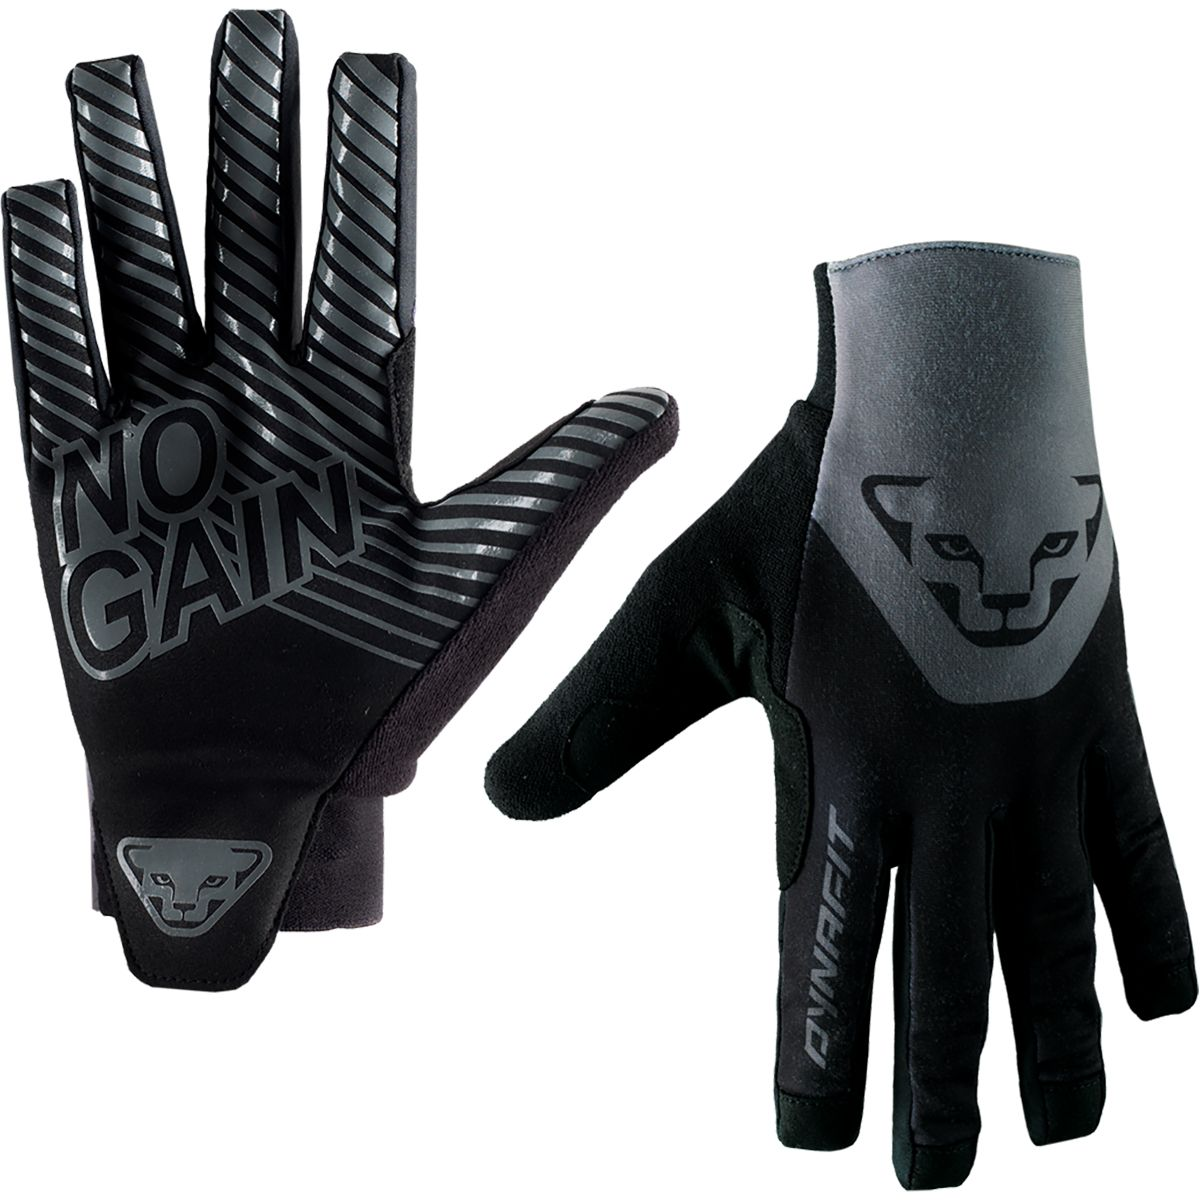 DYNAFIT DNA 2 GLOVES black/grey